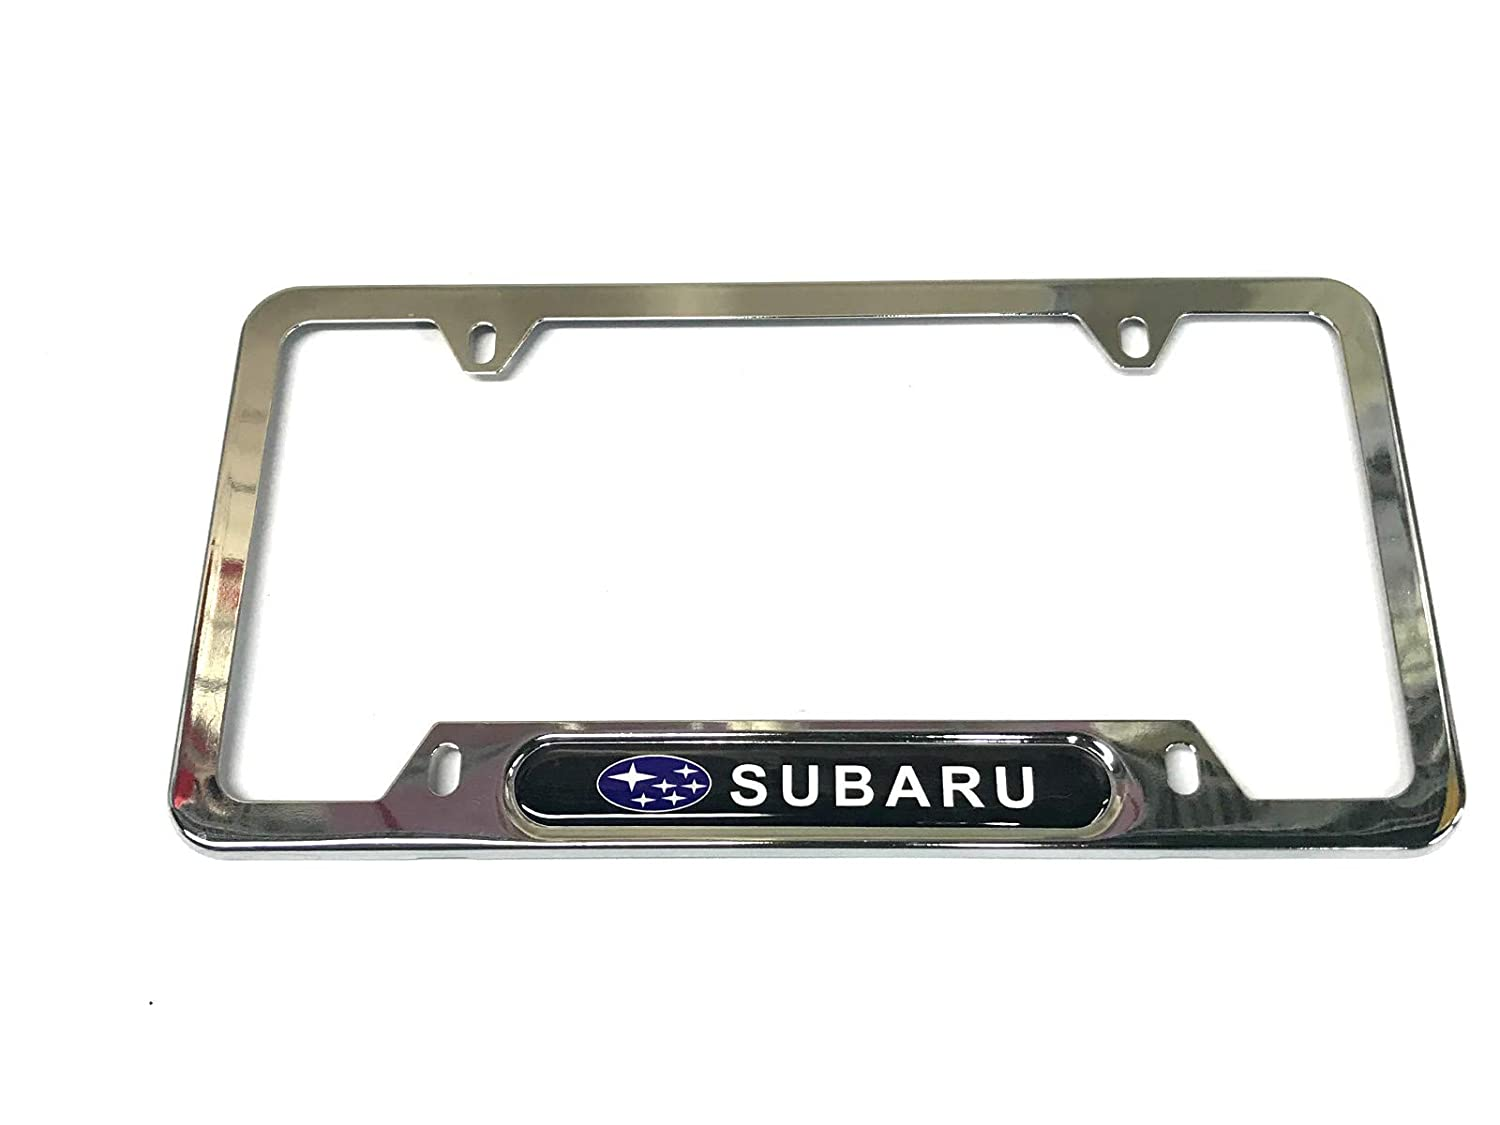 1 Black Auteal Car Stainless Steel Metal License Plate Tag Frame Cover Holders w//Caps Screws for Subaru